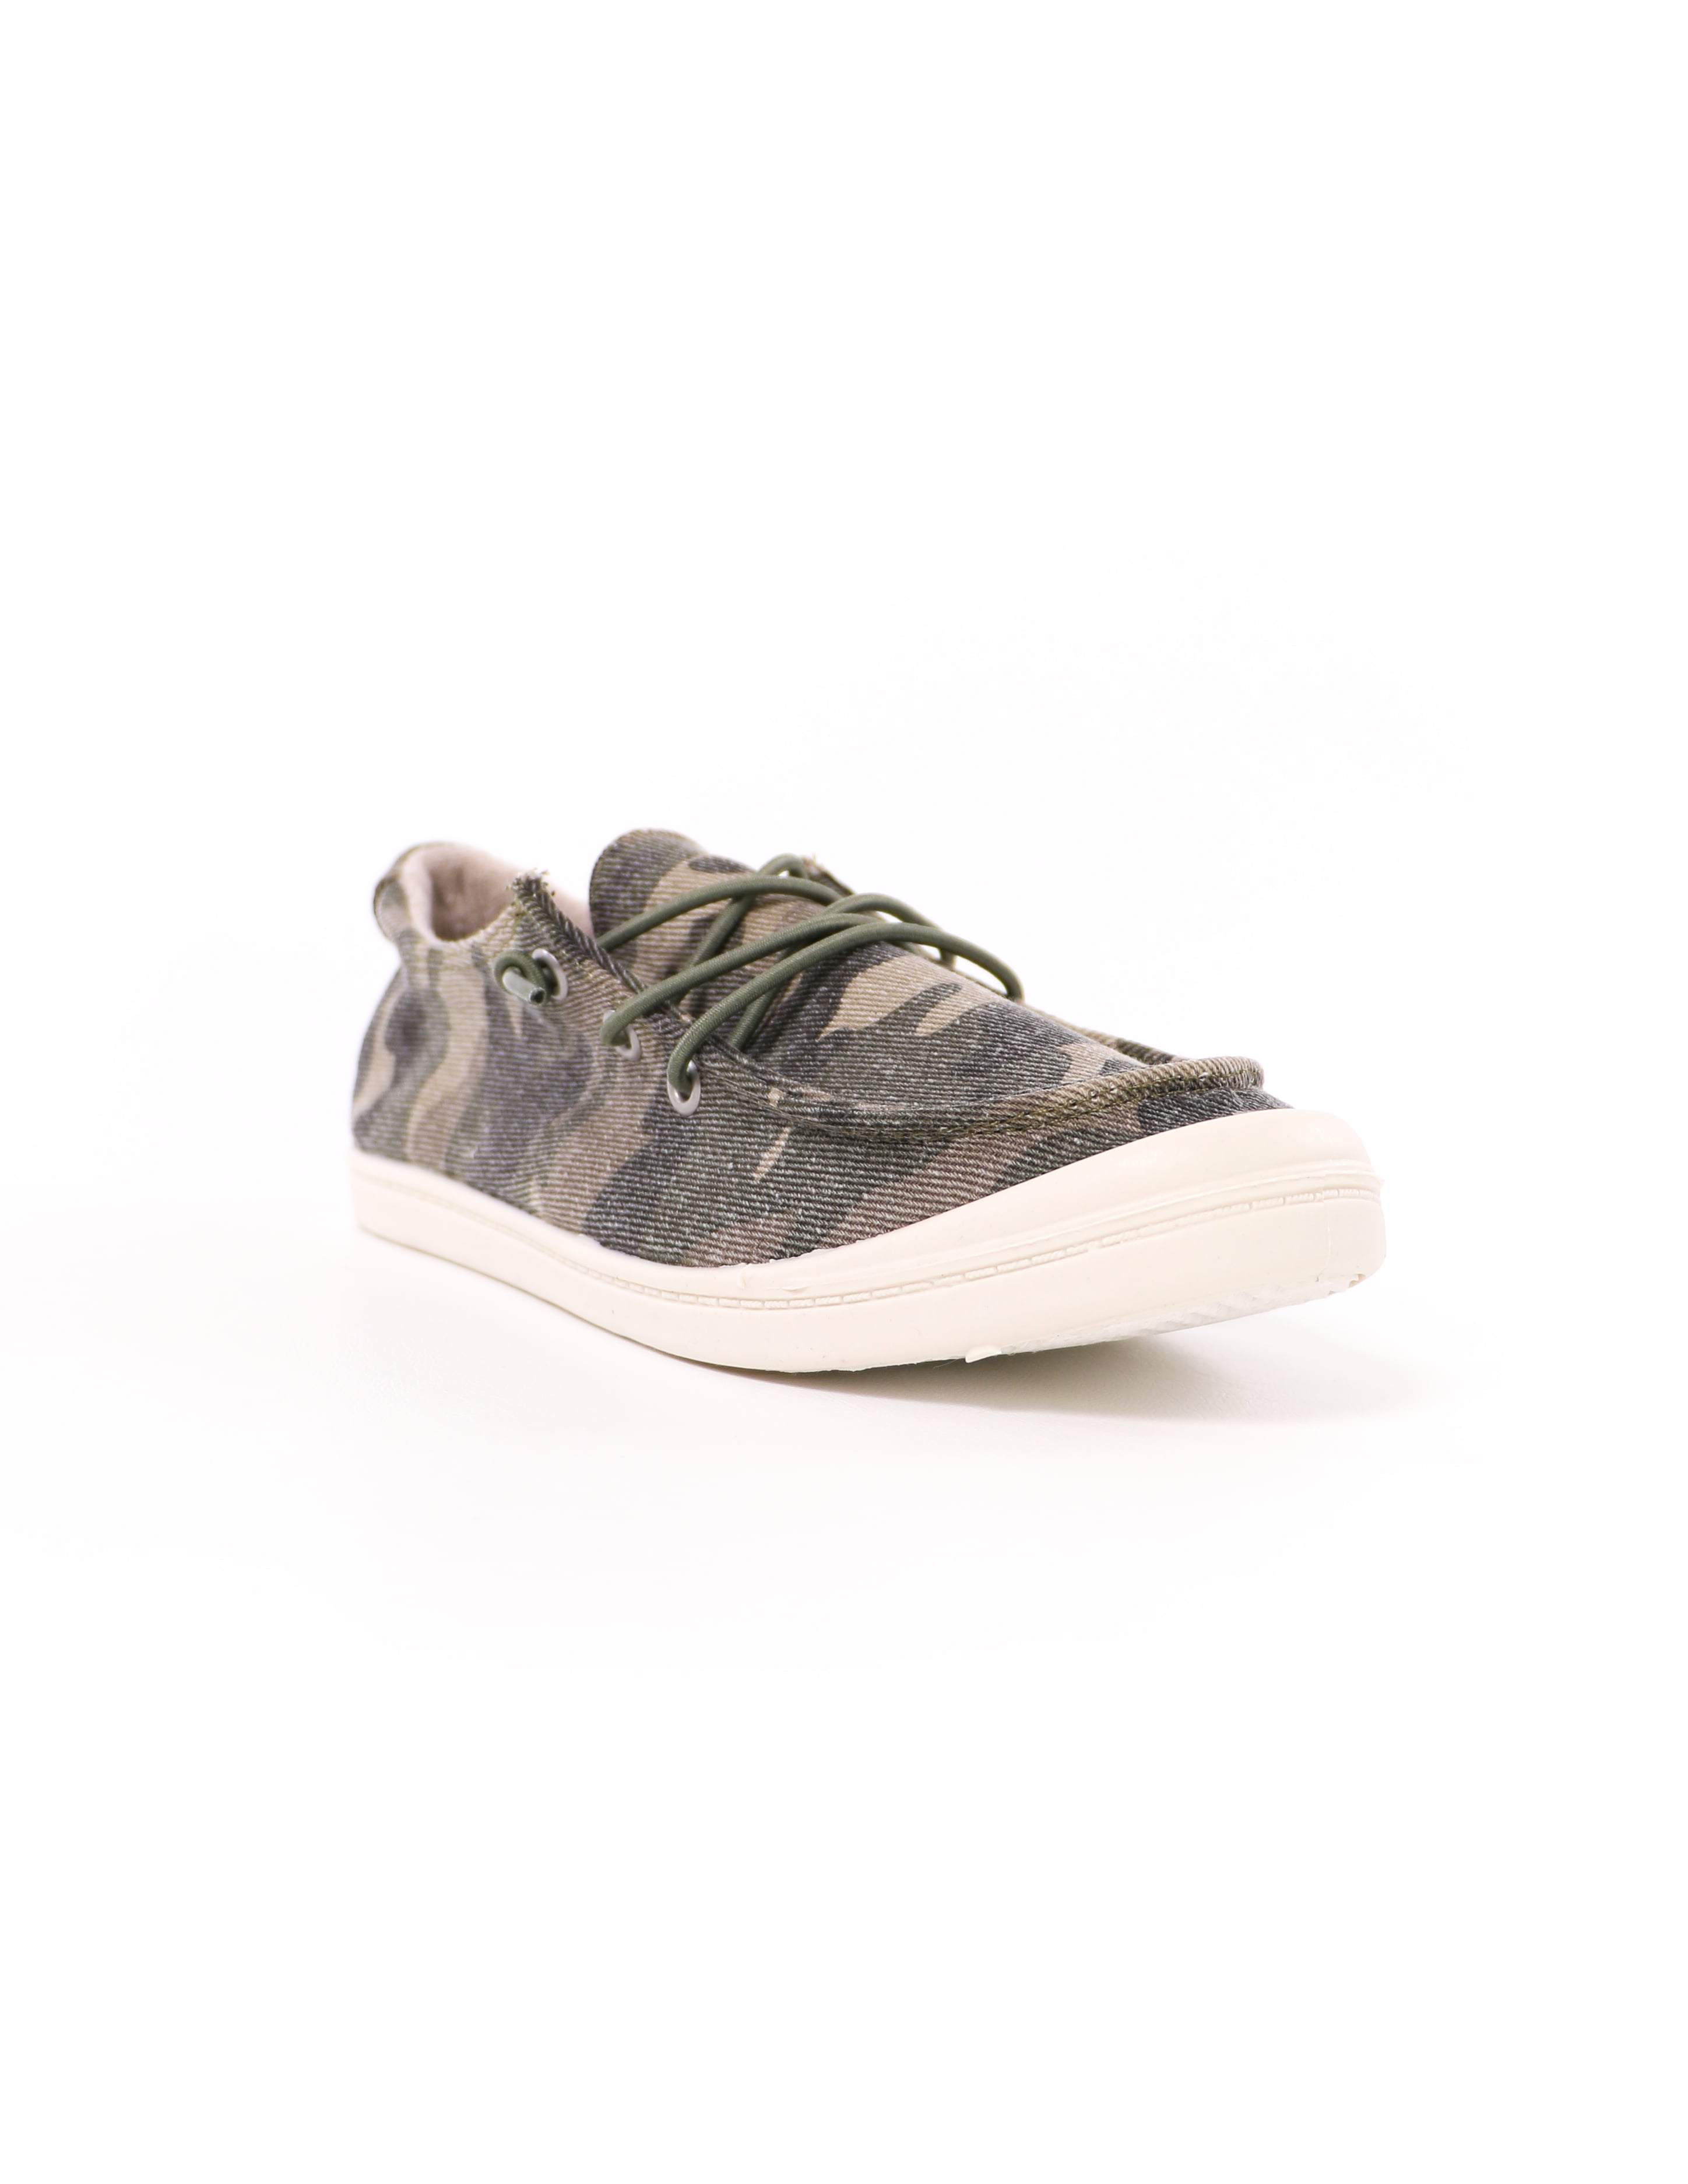 front of the white rubber sole camo thinkin' boat you sneaker shoe - elle bleu shoes